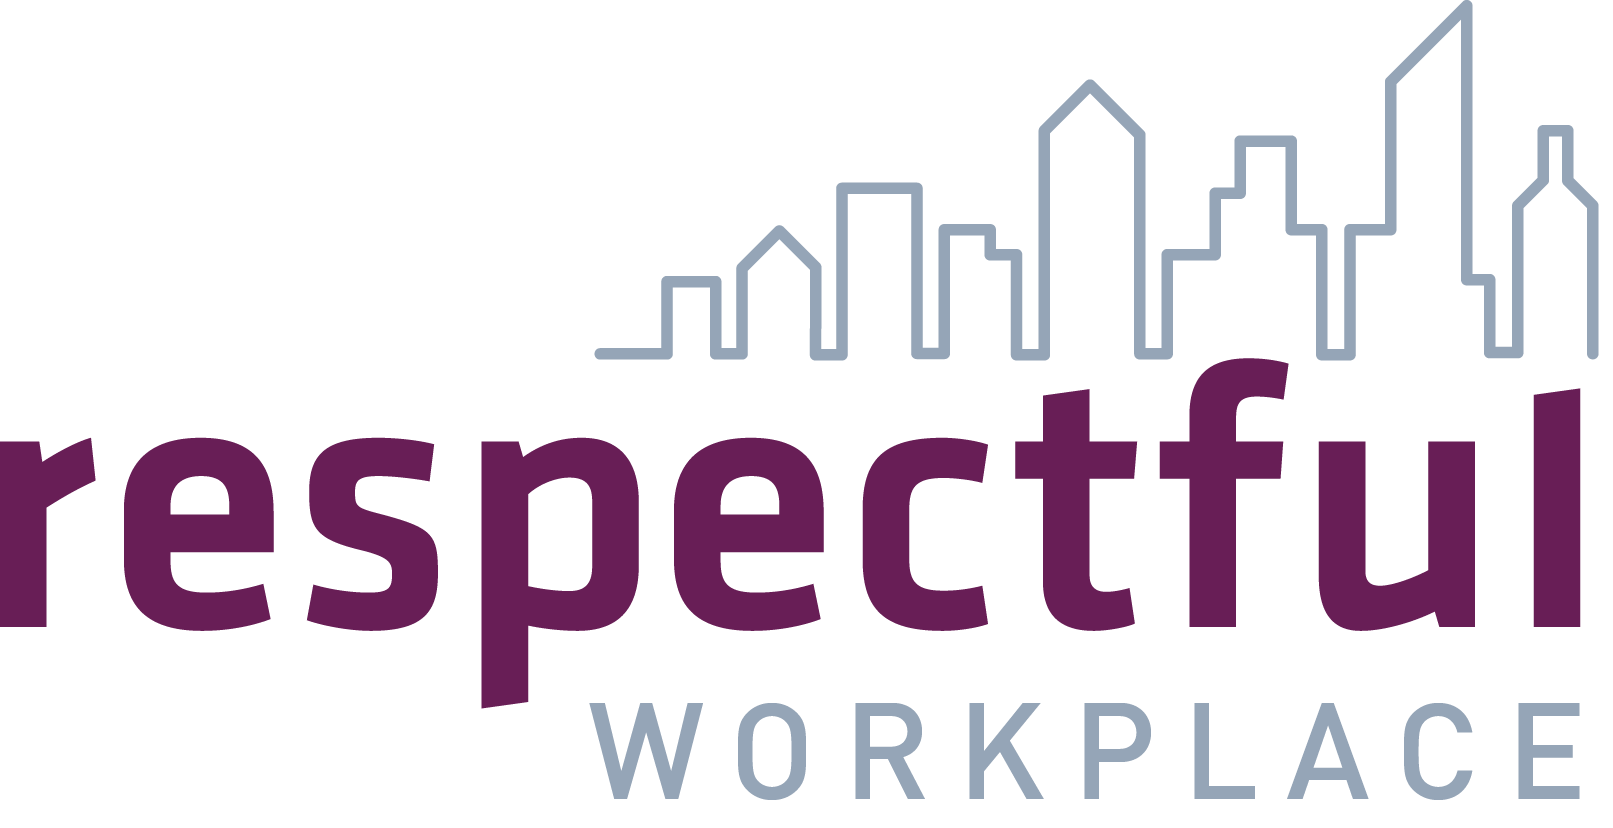 Respectful Workplace Program